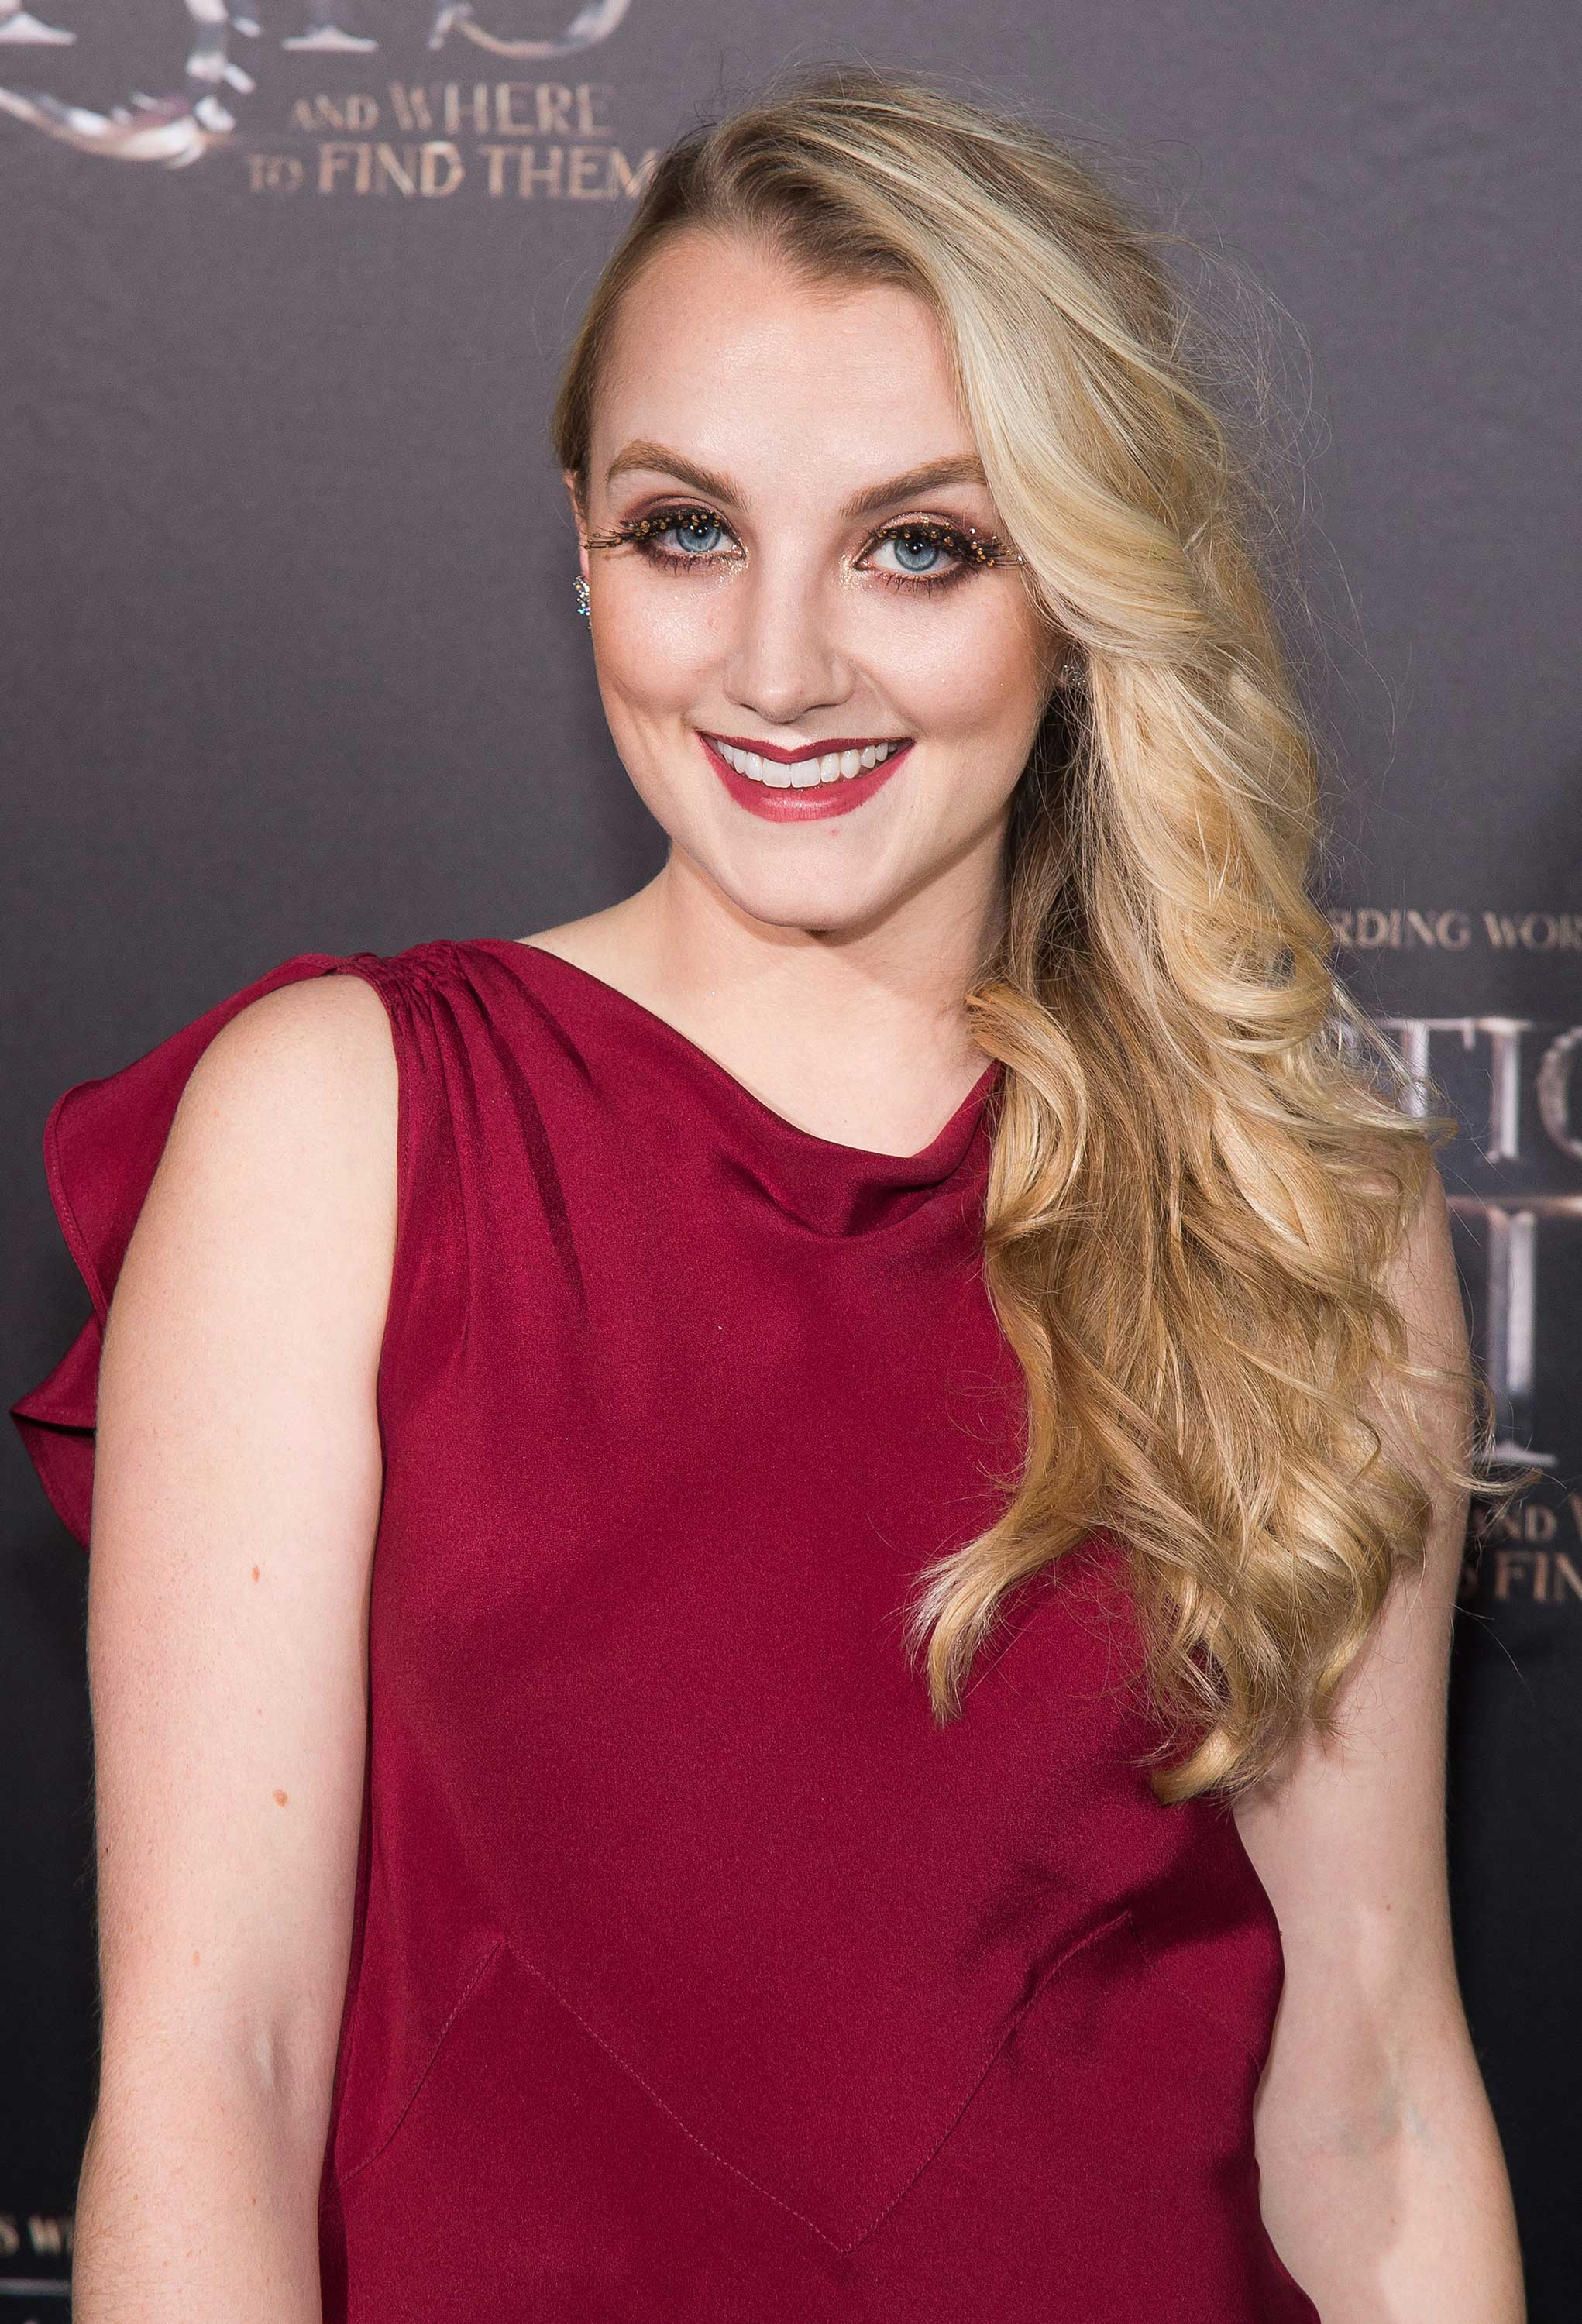 <div class='meta'><div class='origin-logo' data-origin='none'></div><span class='caption-text' data-credit='Charles Sykes/Invision/AP'>Actress Evanna Lynch, who plays Luna Lovegood in the ''Harry Potter'' films, will be dancing.</span></div>